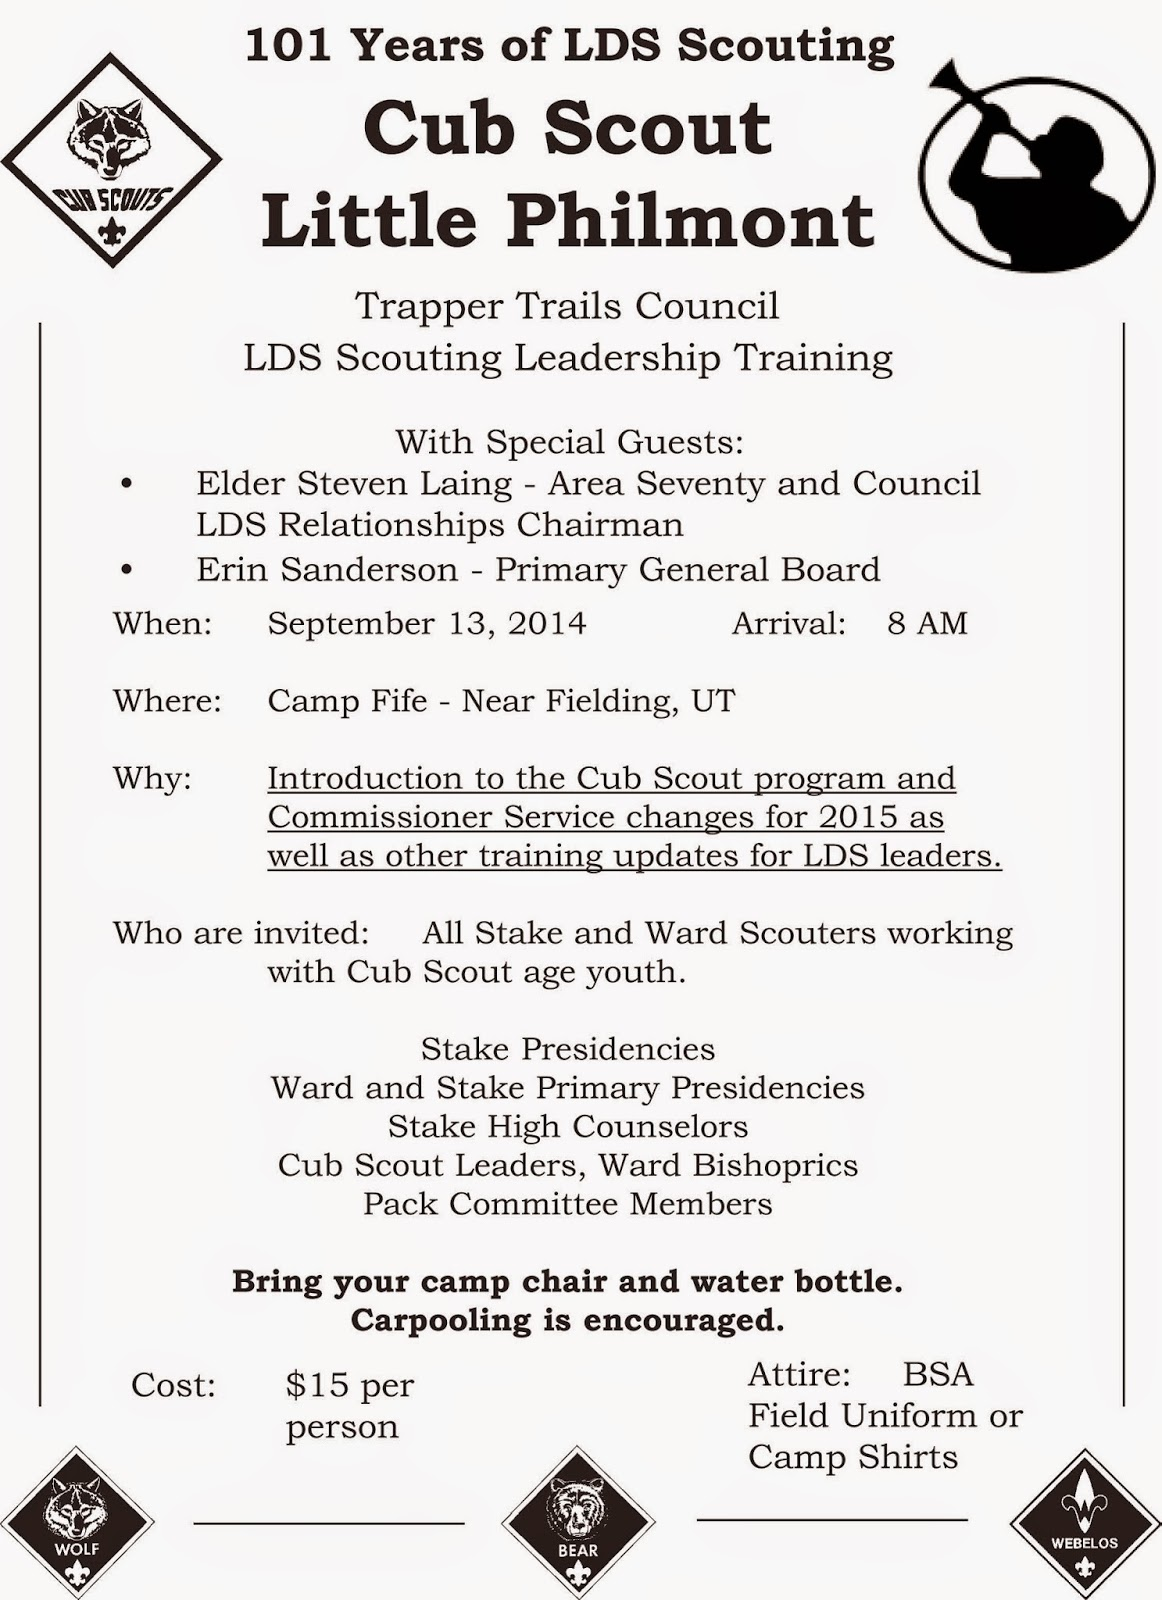 http://trappertrails.doubleknot.com/document/cub-scout-little-philmont-flyer-2014/140208